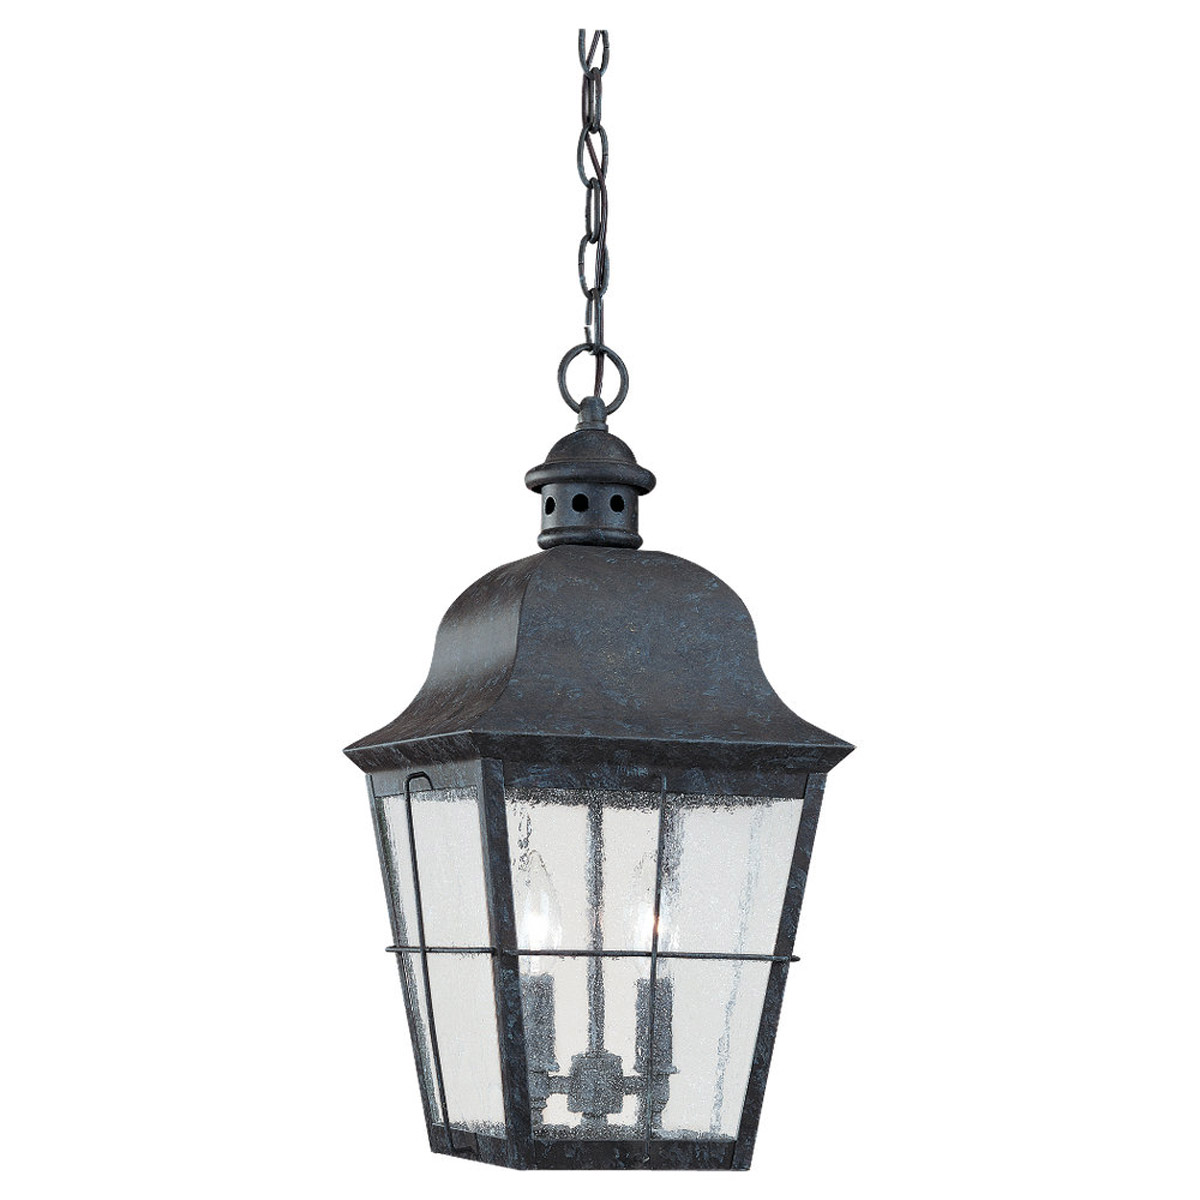 Sea Gull Lighting Chatham 2 Light Outdoor Pendant in Oxidized Bronze 6062-46